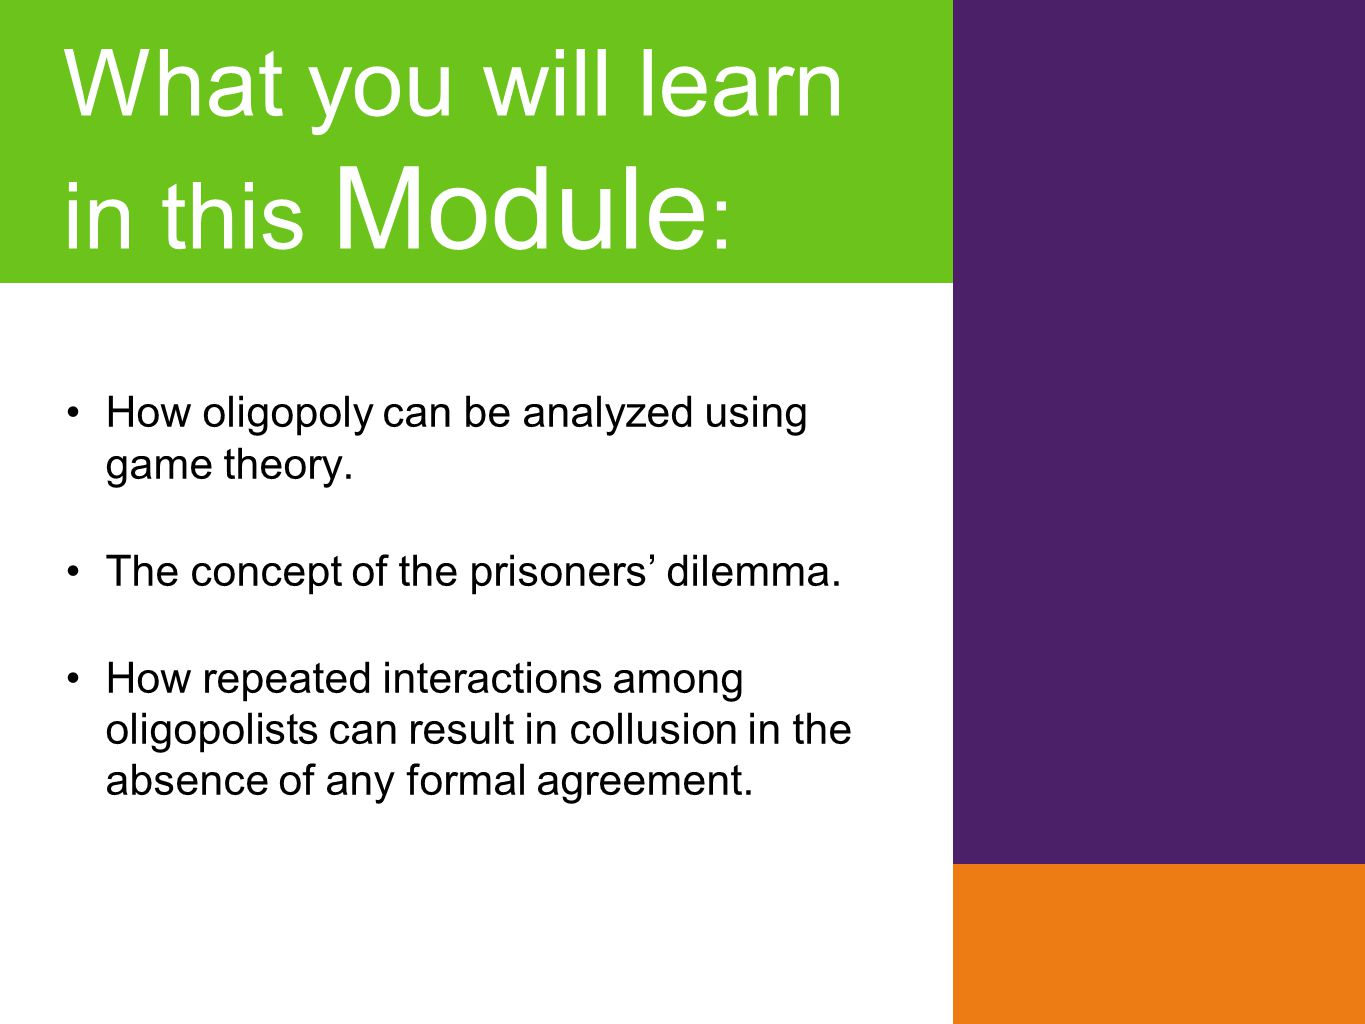 What you will learn in this Module : How oligopoly can be analyzed using game theory. The concept of the prisoners' dilemma. How repeated interactions